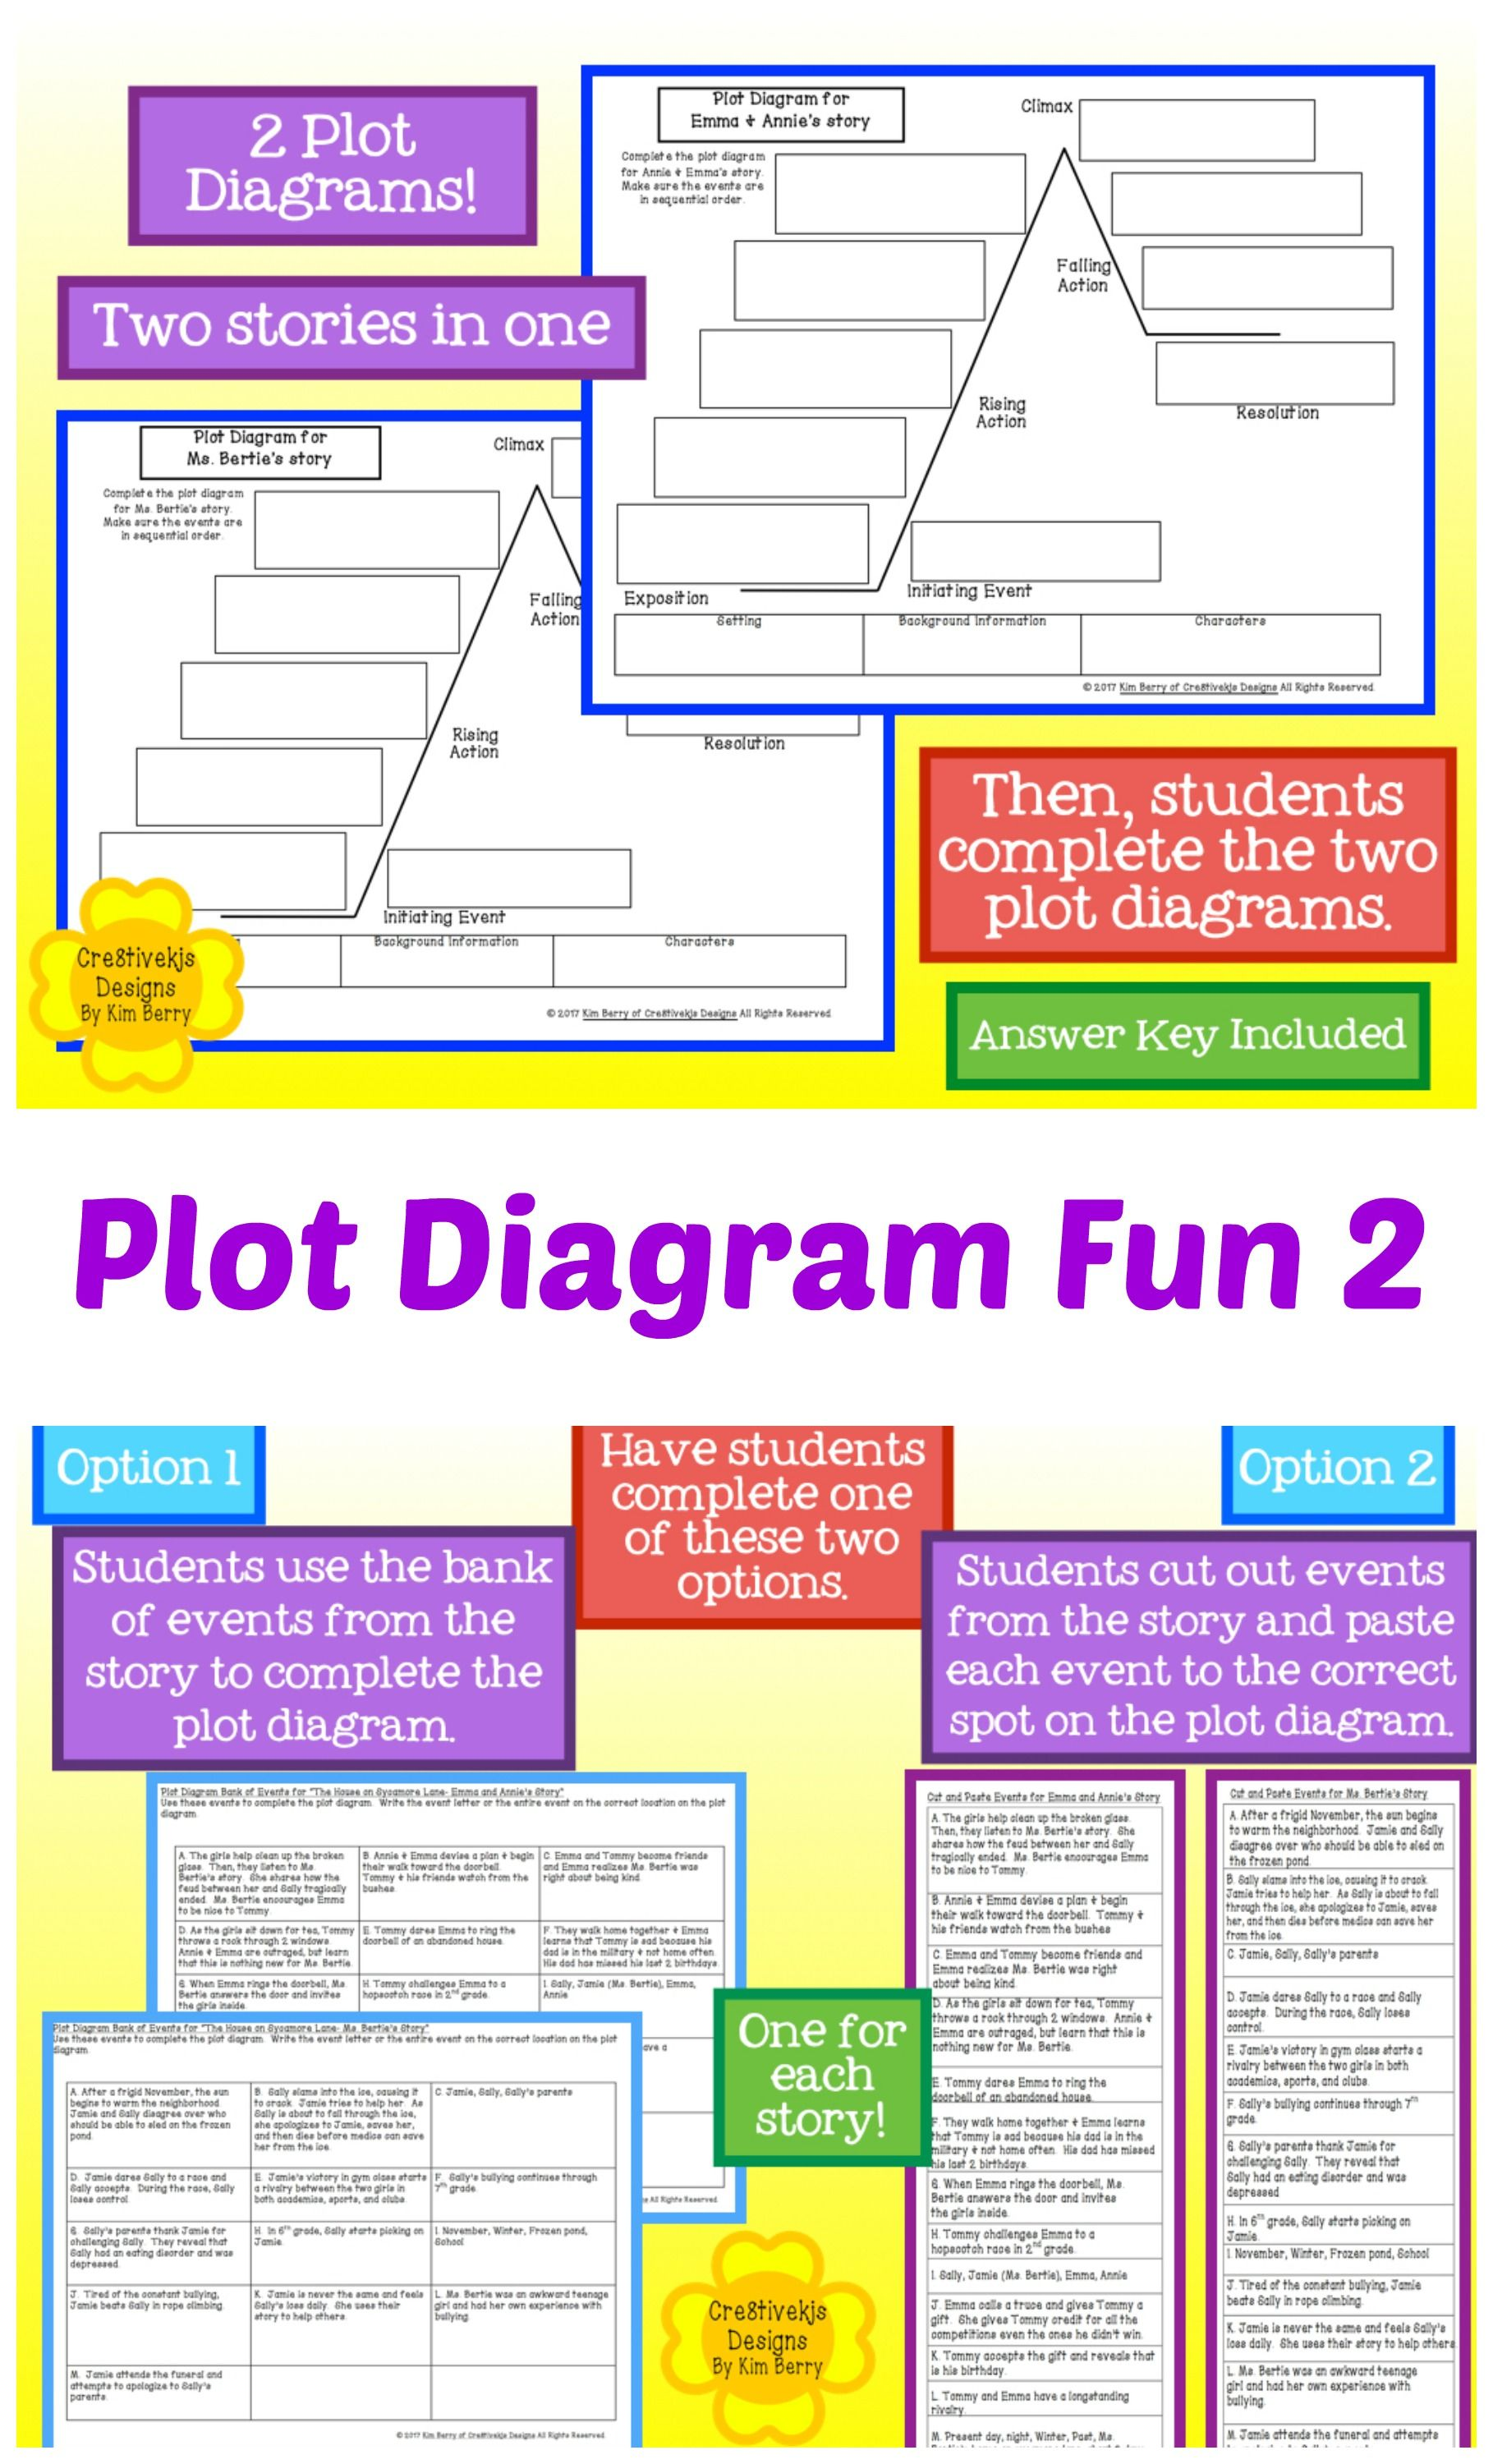 Lo Ng For An En Ing Way To Teach The Elements Of Plot Plot Diagram Fun 2 Is A Great Resource That Will Help Your Students Practiceyzing A Story